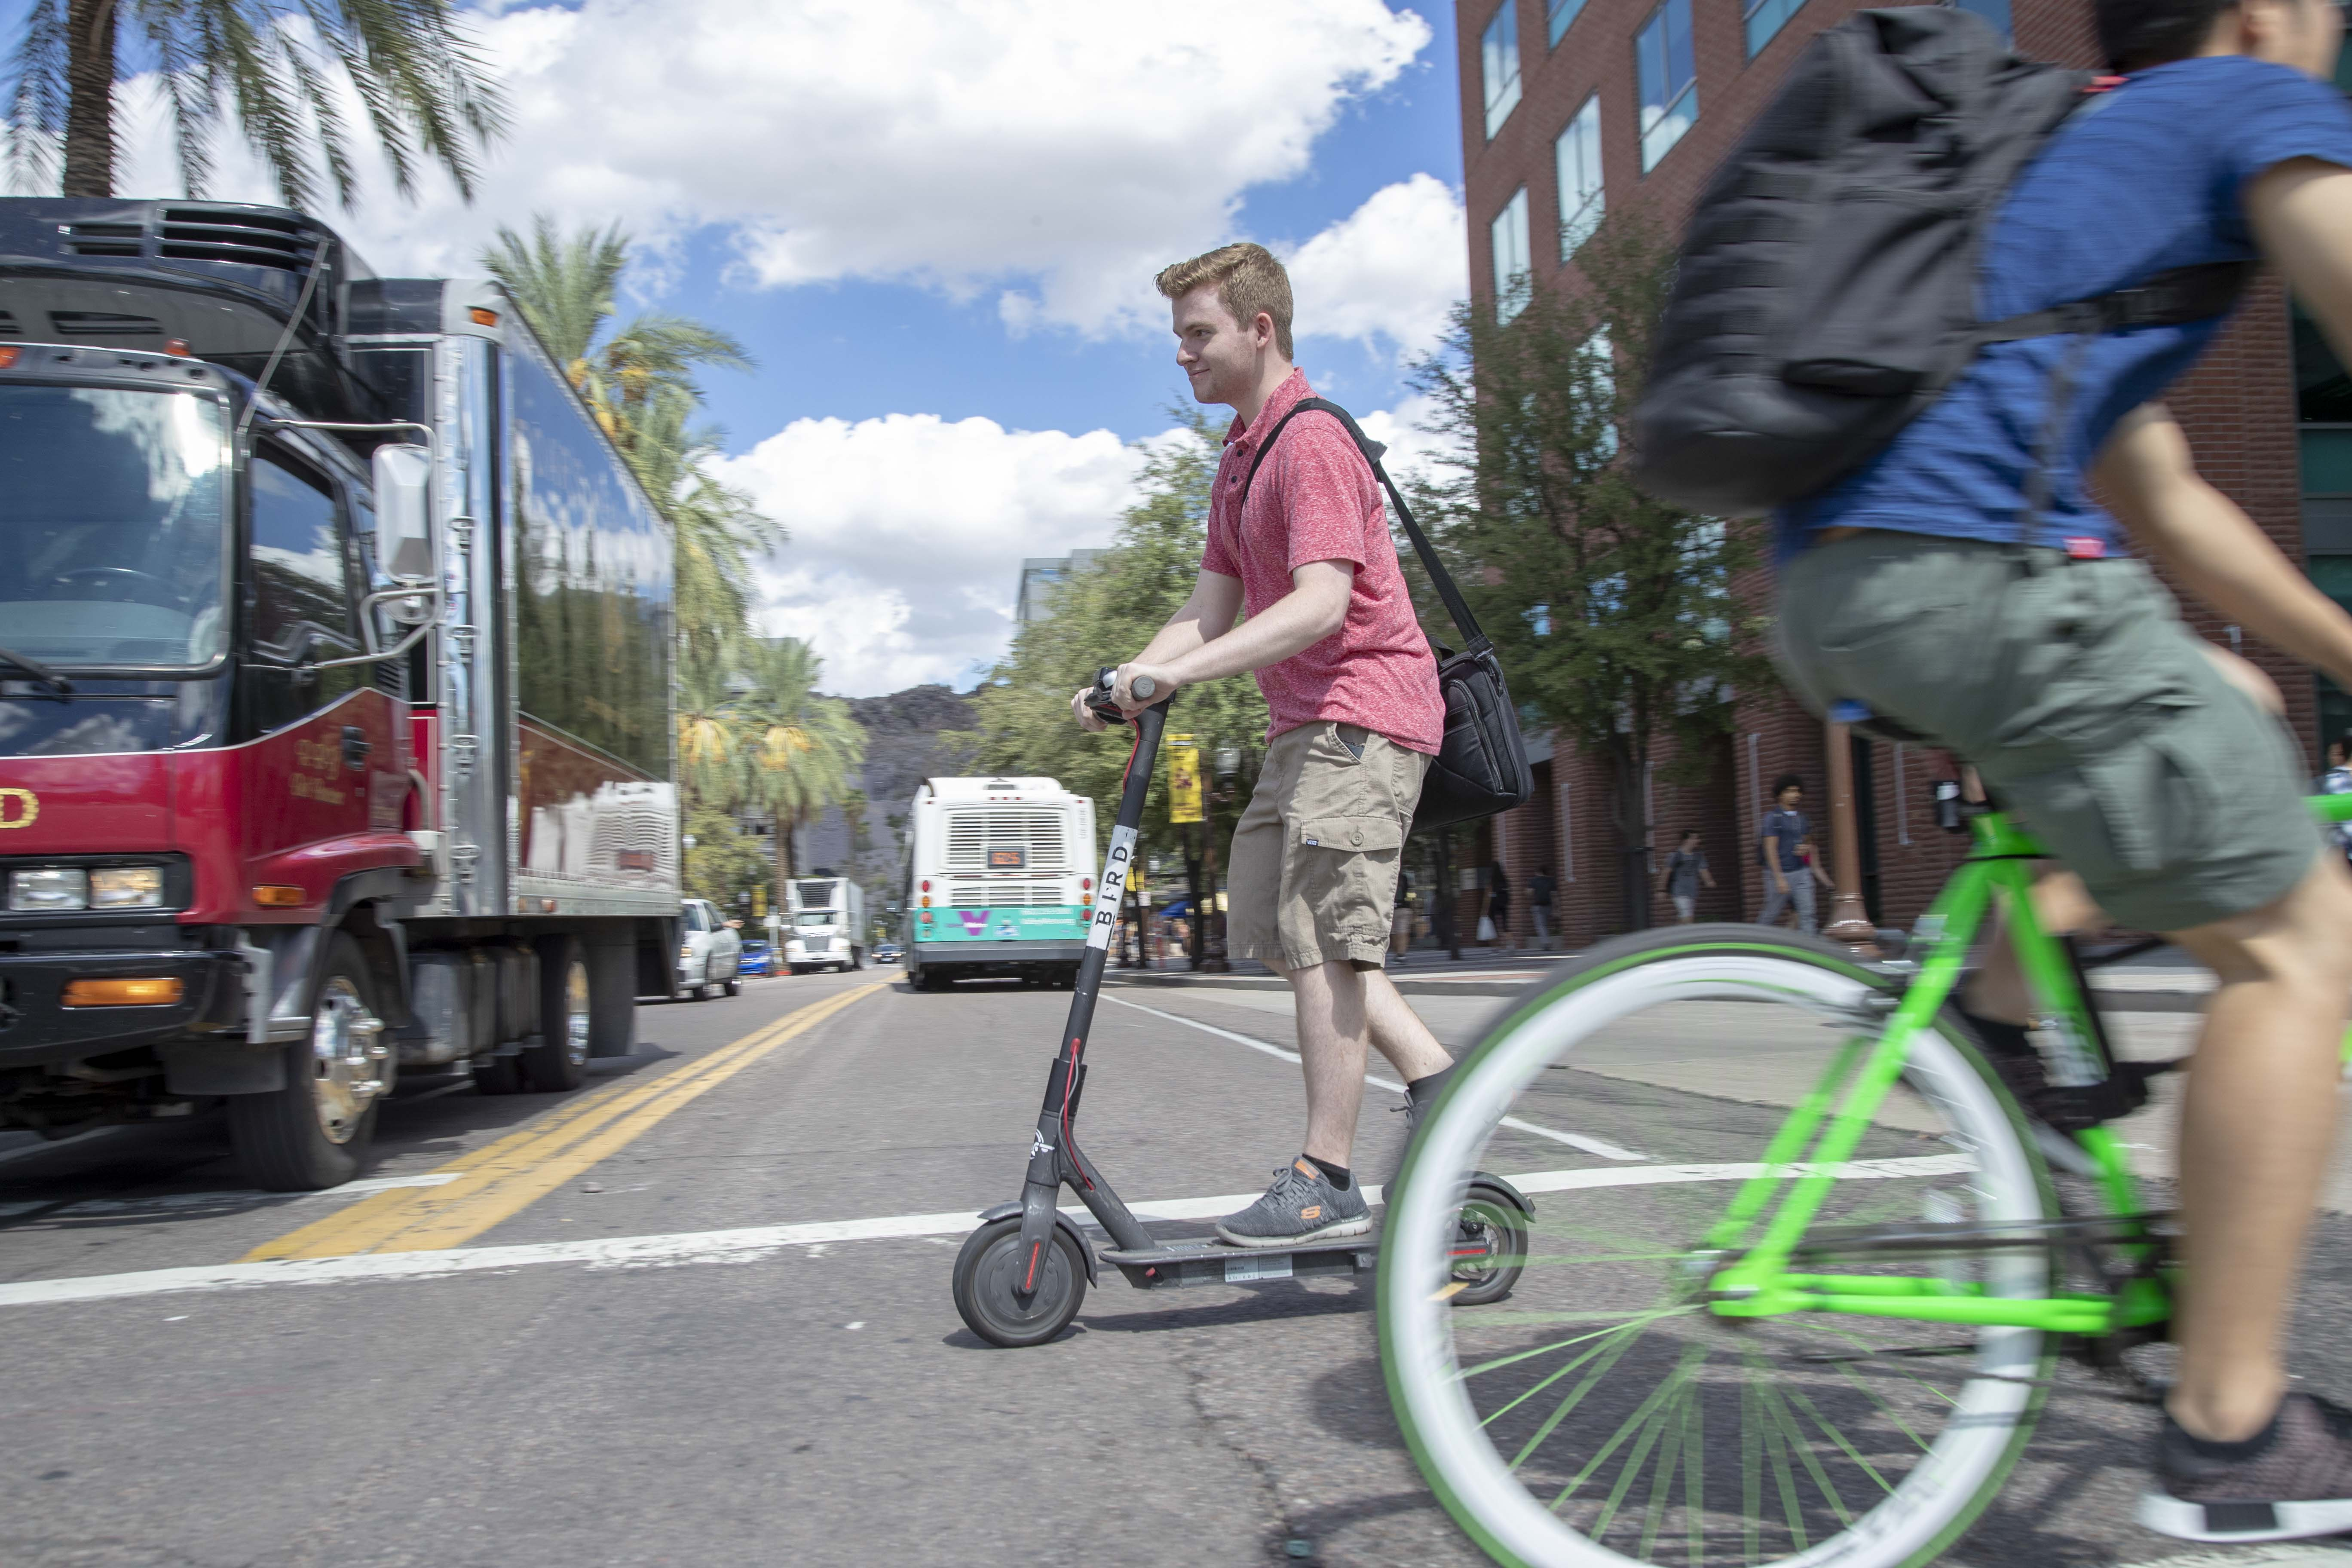 As scooter accidents in metro Phoenix hit triple digits, another city regulates scooters